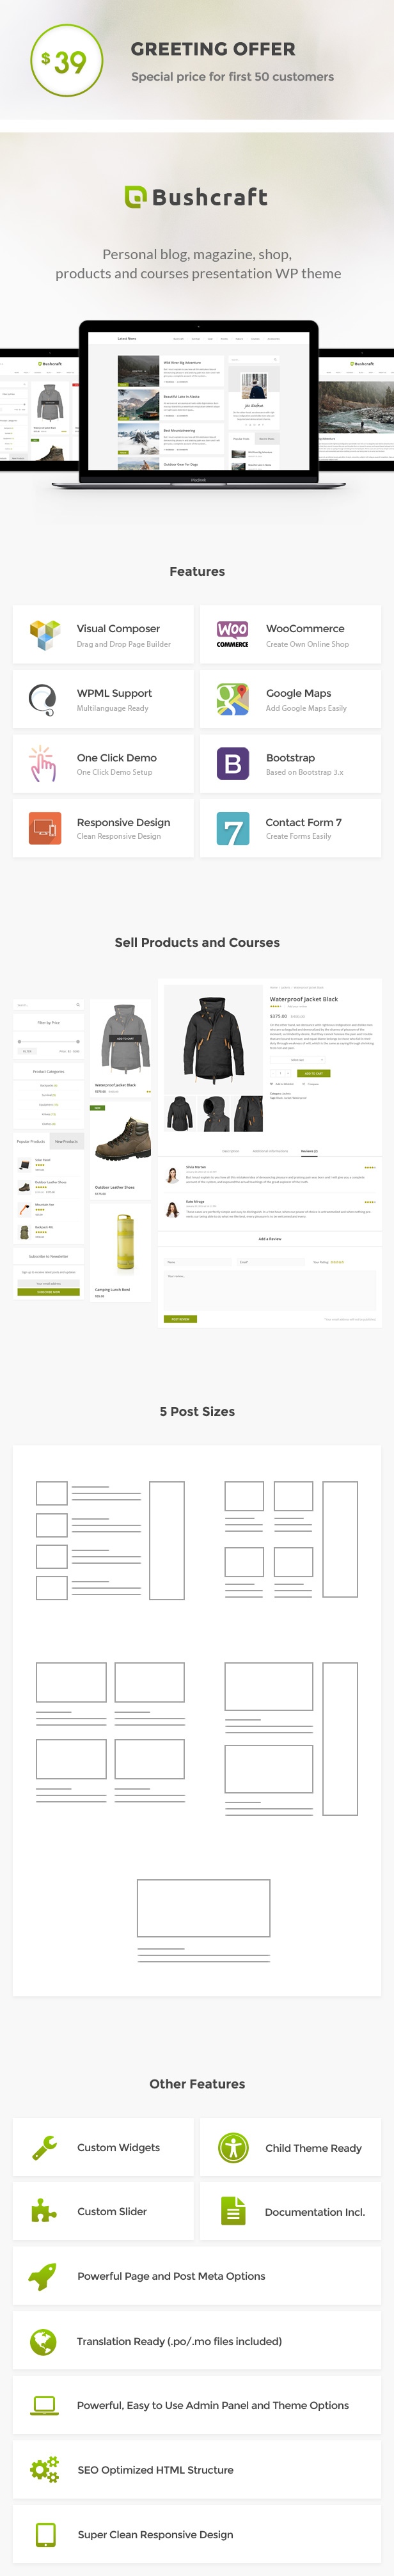 Bushcraft - Personal Blog WordPress Theme - wordpress, themeforest, blog-magazine